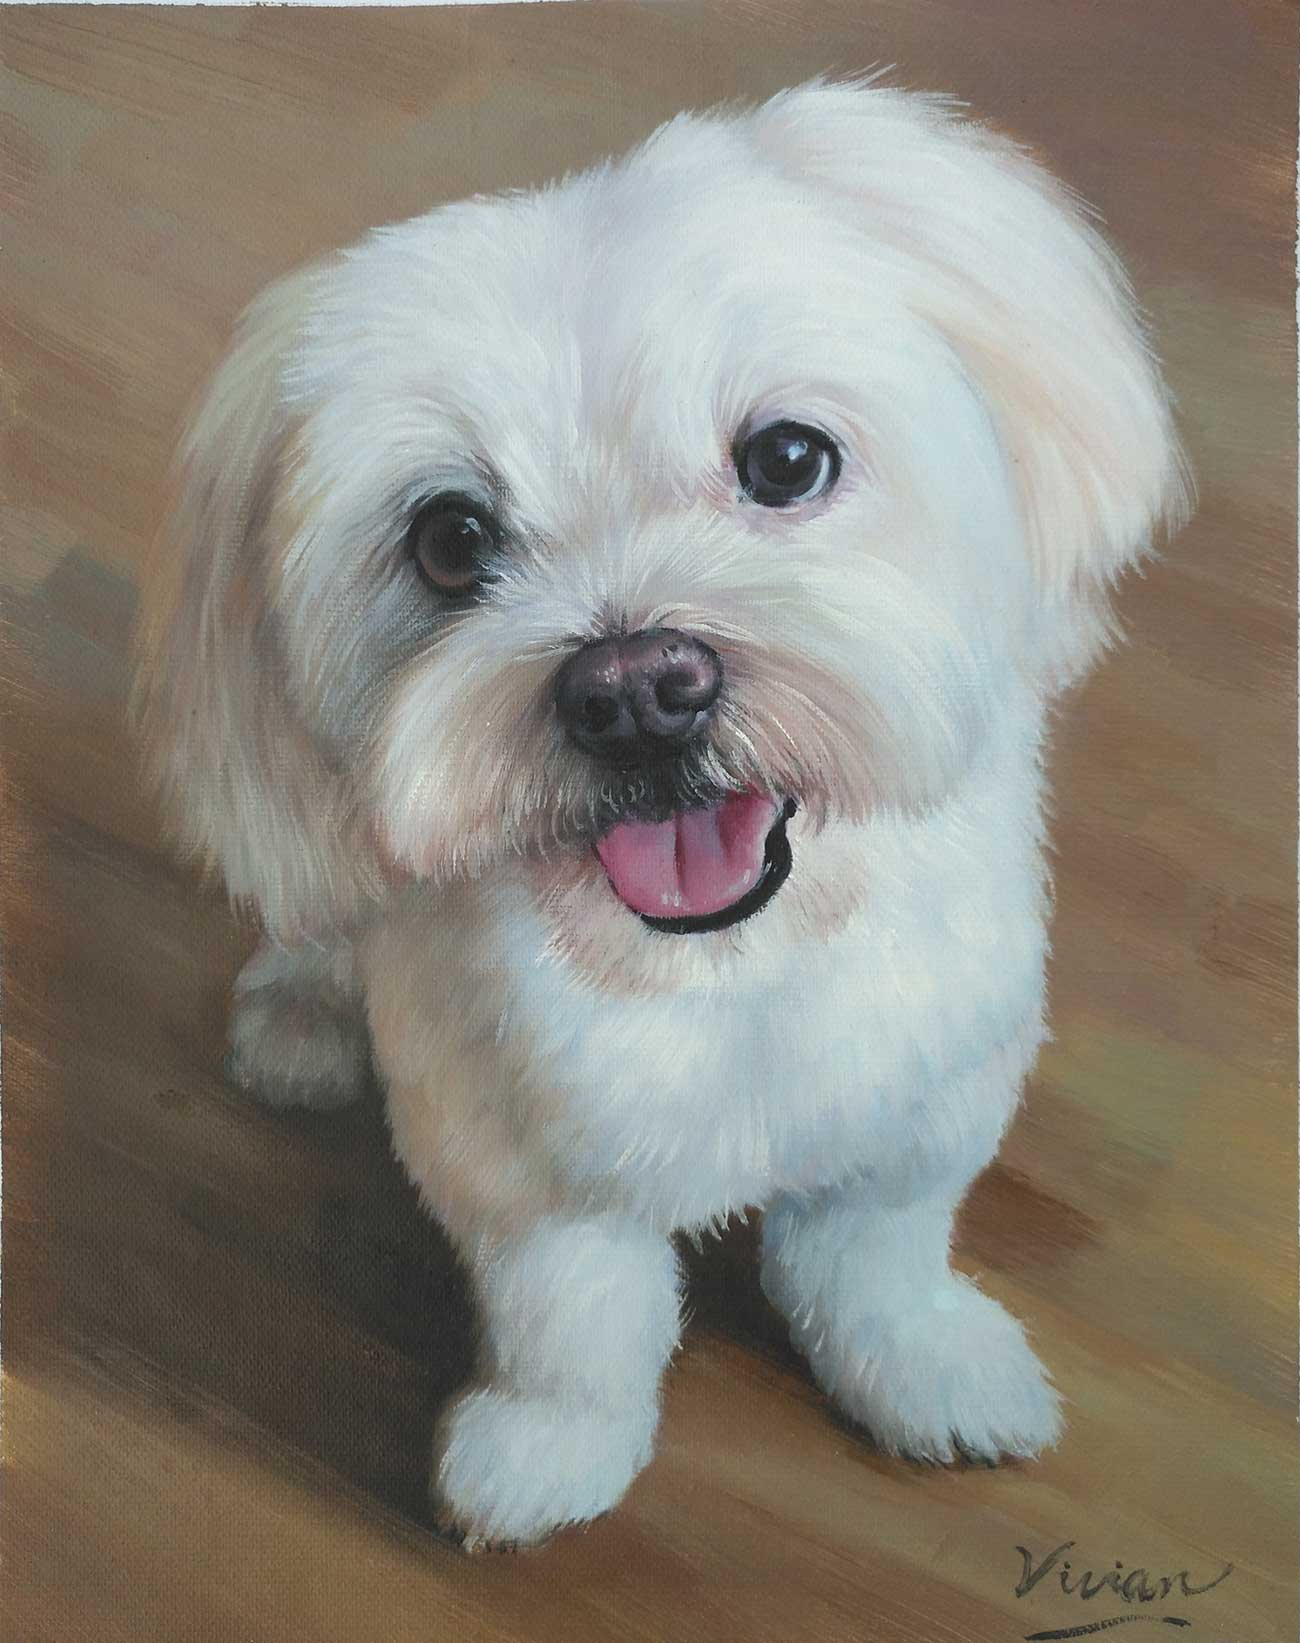 Hand painted portrait from photo of beautiful white, fluffy dog.